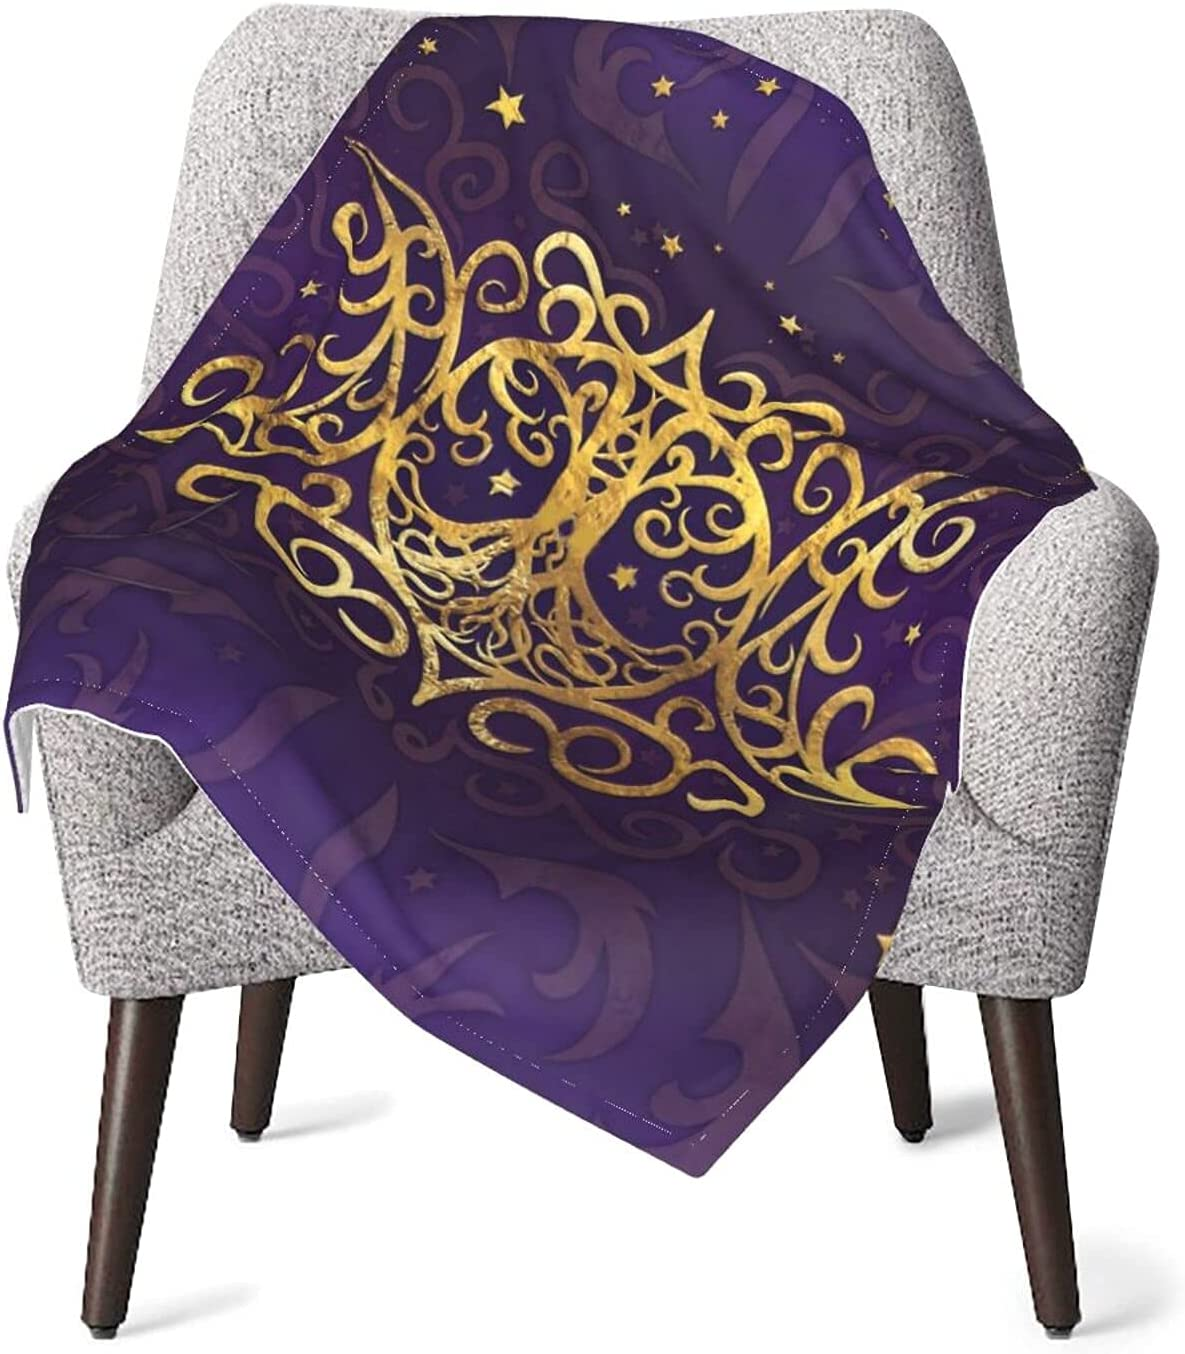 Gold Triple Moon Manufacturer regenerated New Shipping Free Shipping product Goddess Warm Blankets Air Throw Cozy Conditioni